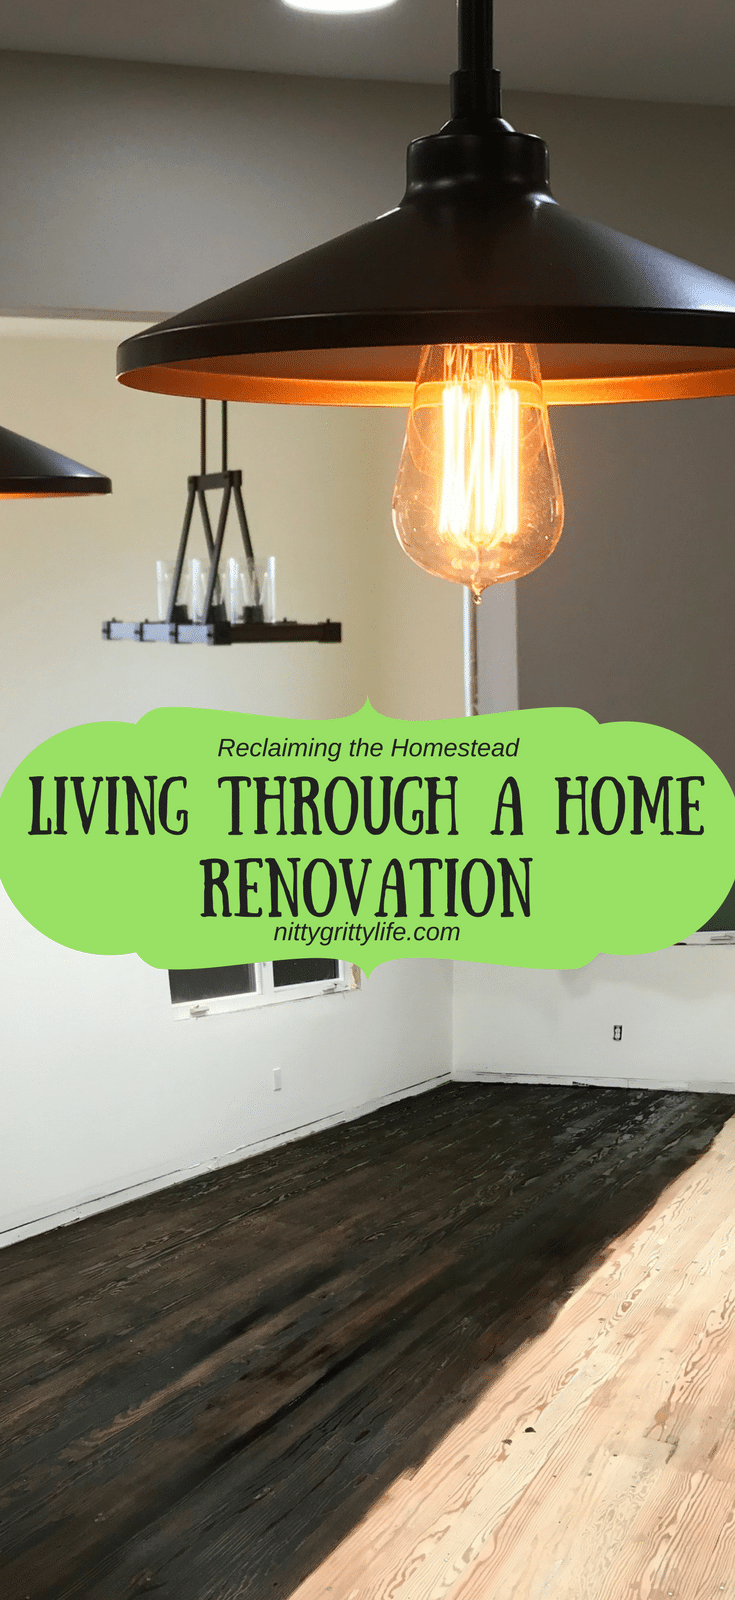 From a minor remodel to a full re-build, home renovation is hard.  Here are just a few of the things we learned while living through a home renovation. #homerenovation #remodeling #renovation